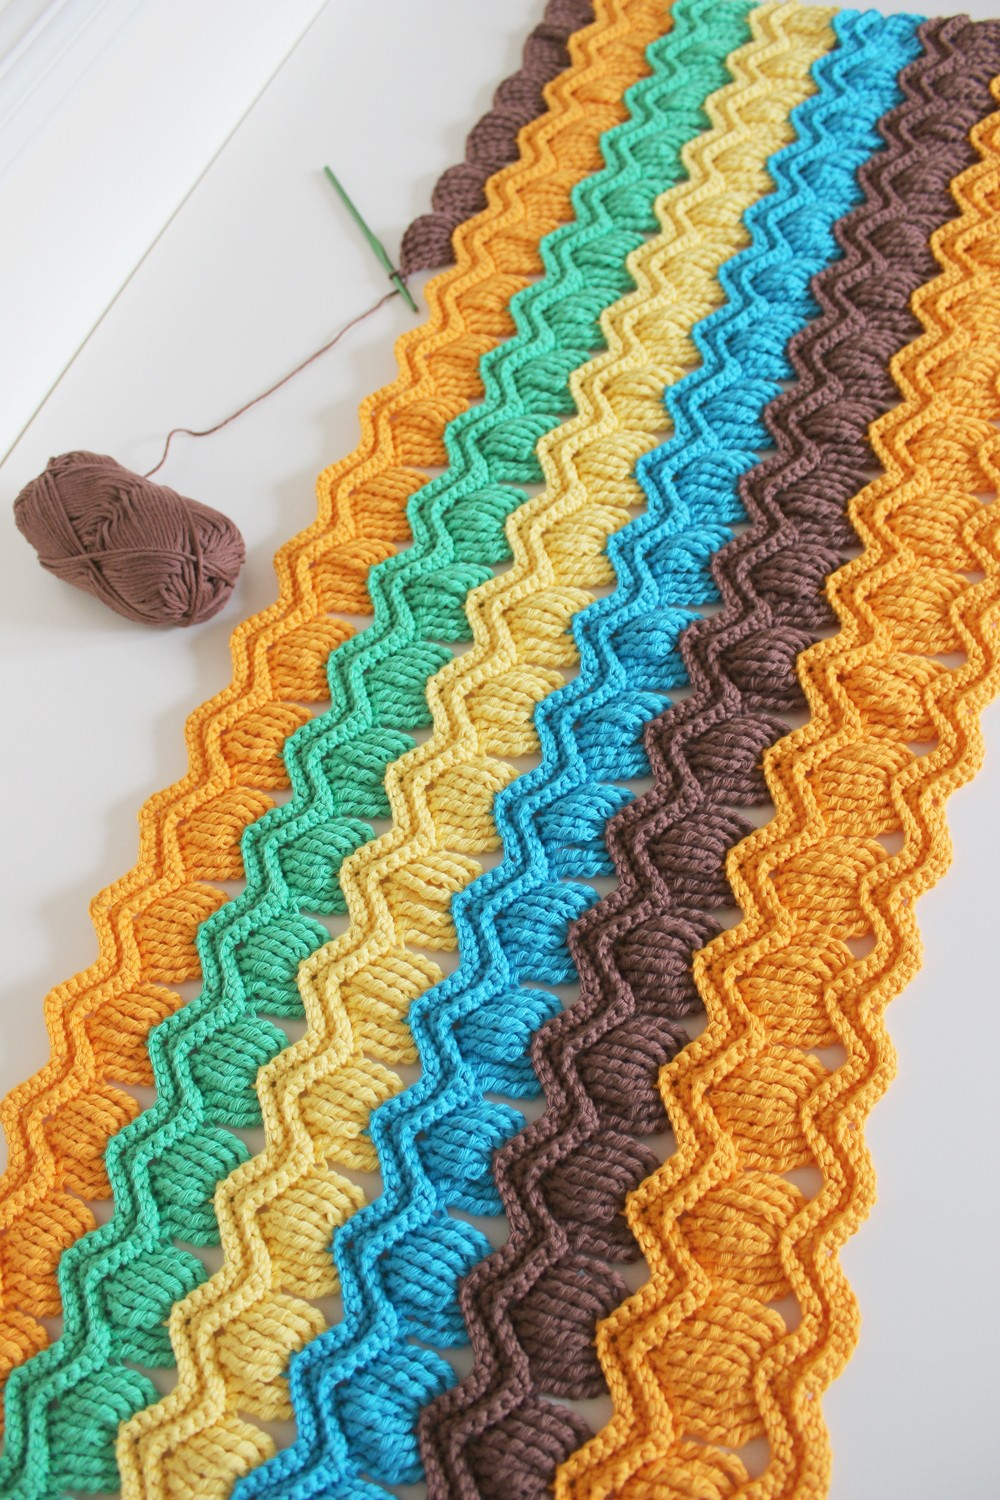 Free Crochet Stitches : Free Pattern] Crochet Vintage Fan Ripple Stitch